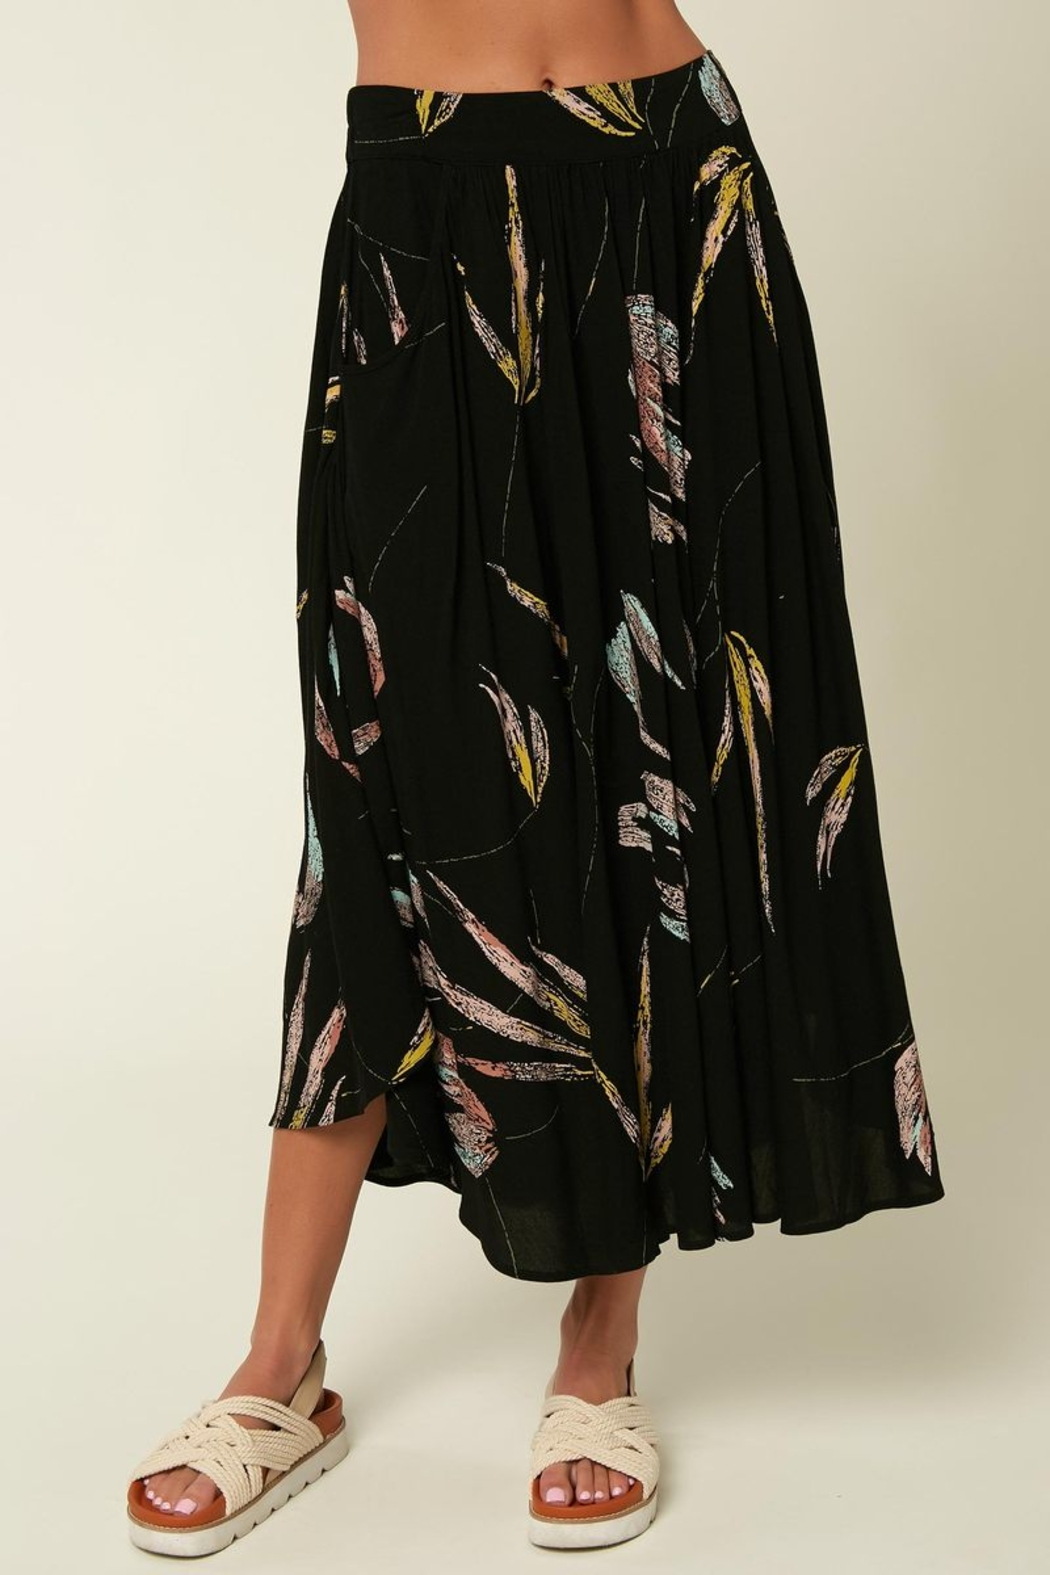 O'Neill Merin Floral Skirt - Main Image